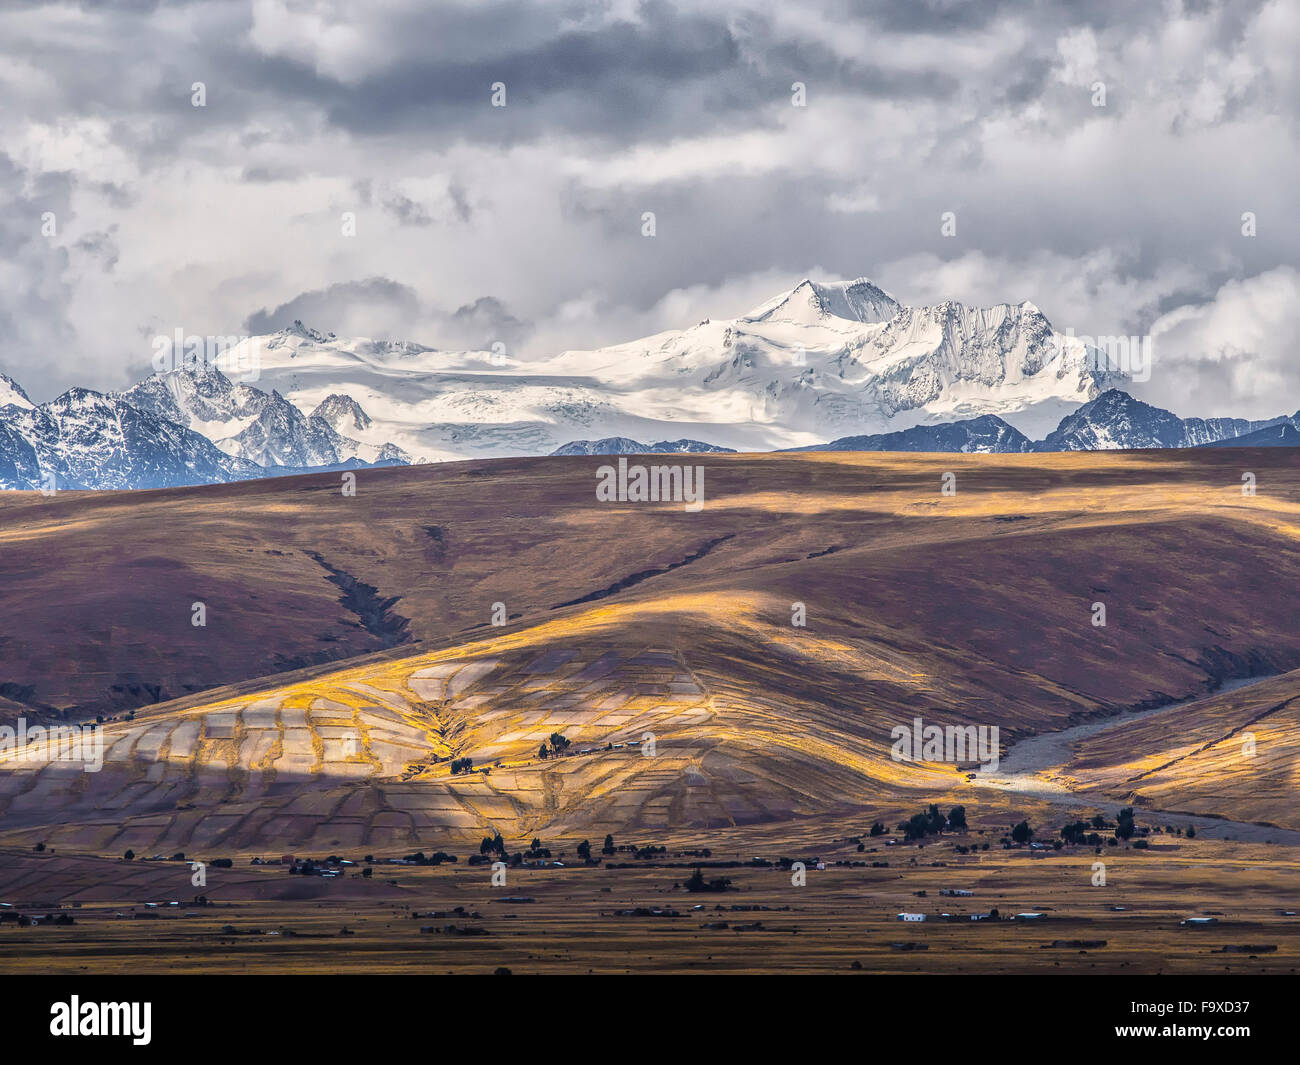 Bolivia, La Paz district, Altiplano, Rays of light between the clouds on the peaks of the Cordillera Real mountain - Stock Image